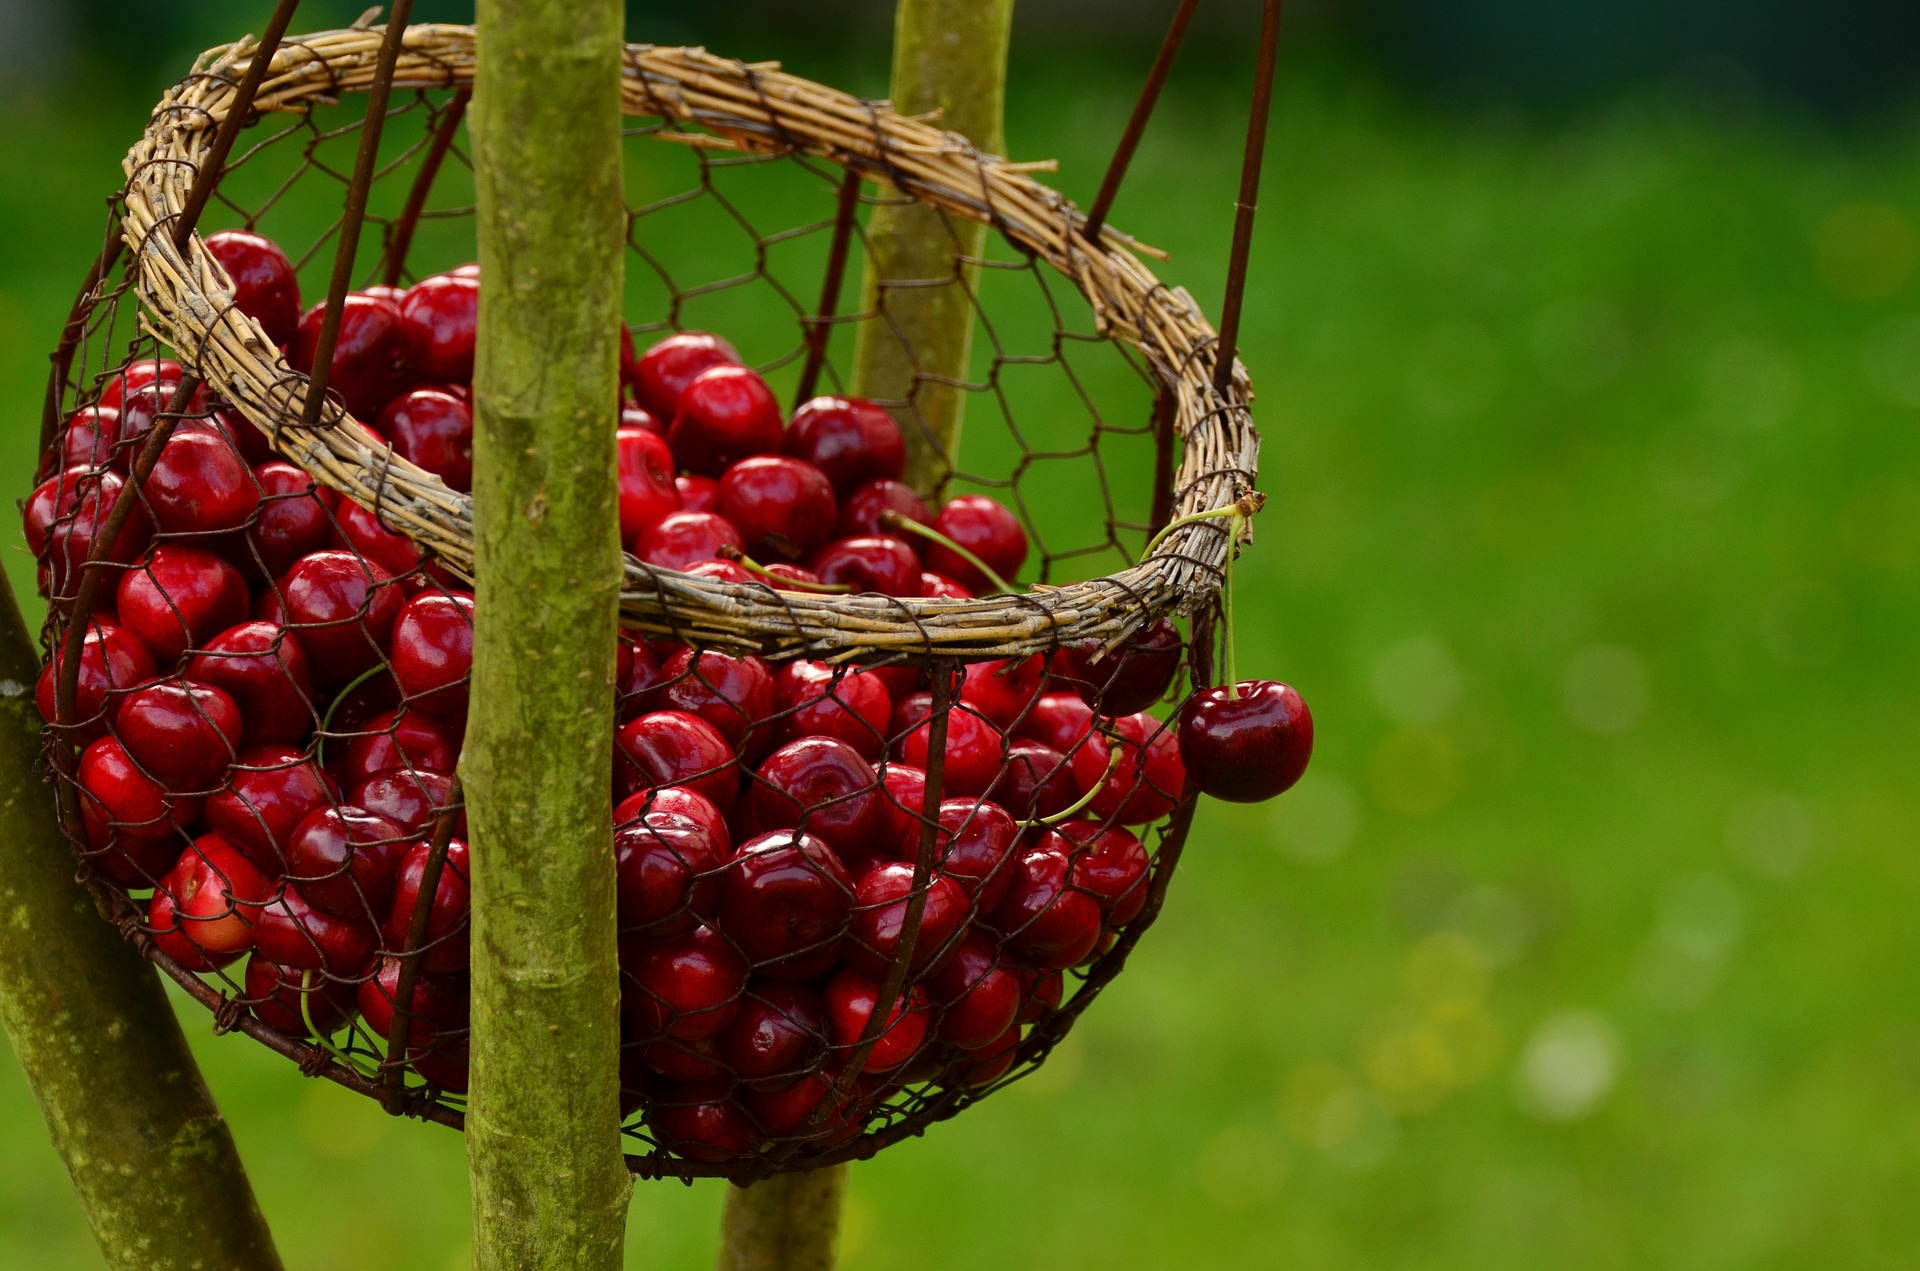 cherries in a net